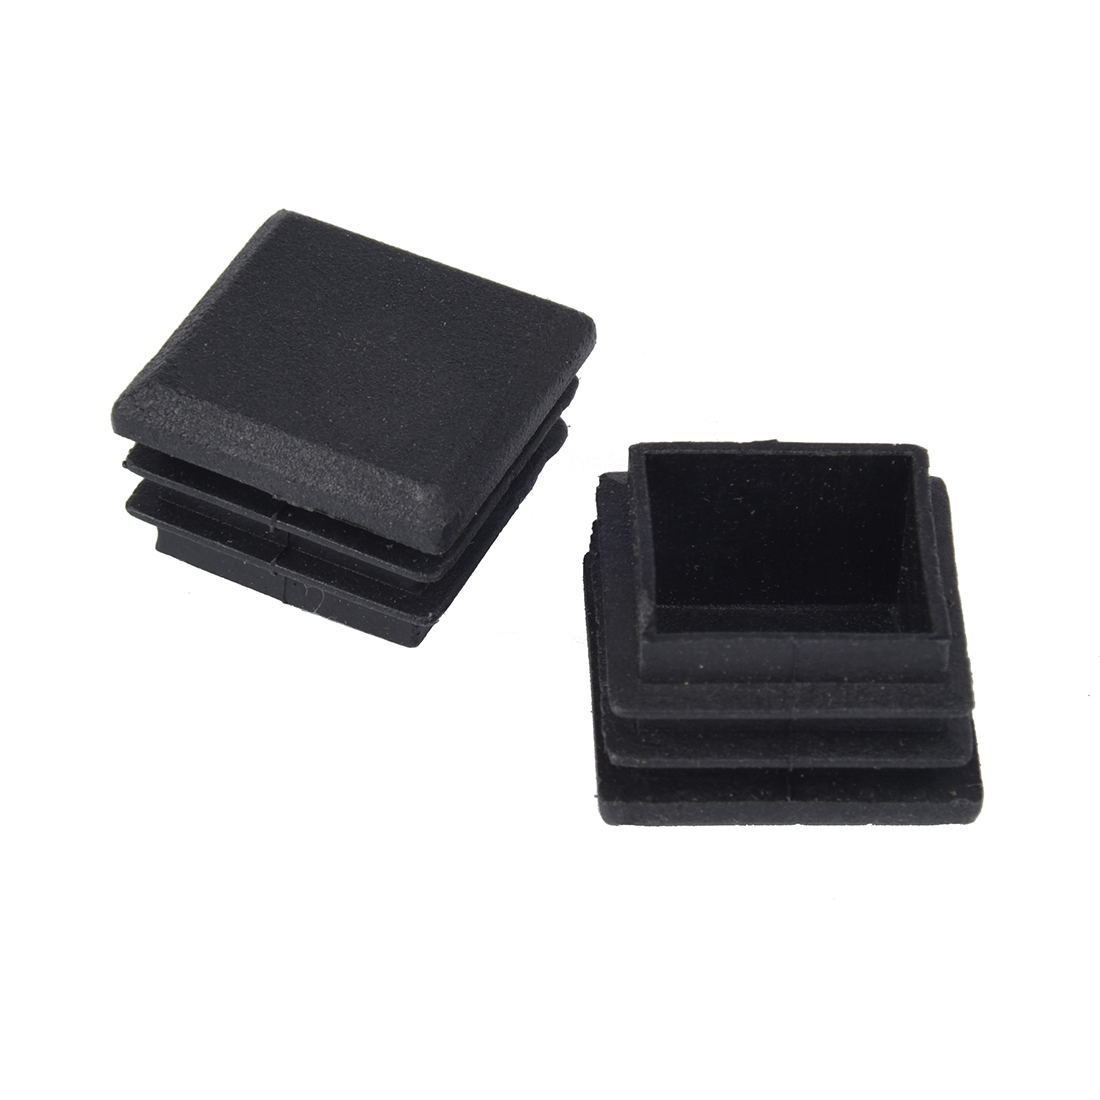 Fashion-10 Pcs Black Plastic Square Tube Inserts End Blanking Cap 25mm x 25mmFashion-10 Pcs Black Plastic Square Tube Inserts End Blanking Cap 25mm x 25mm